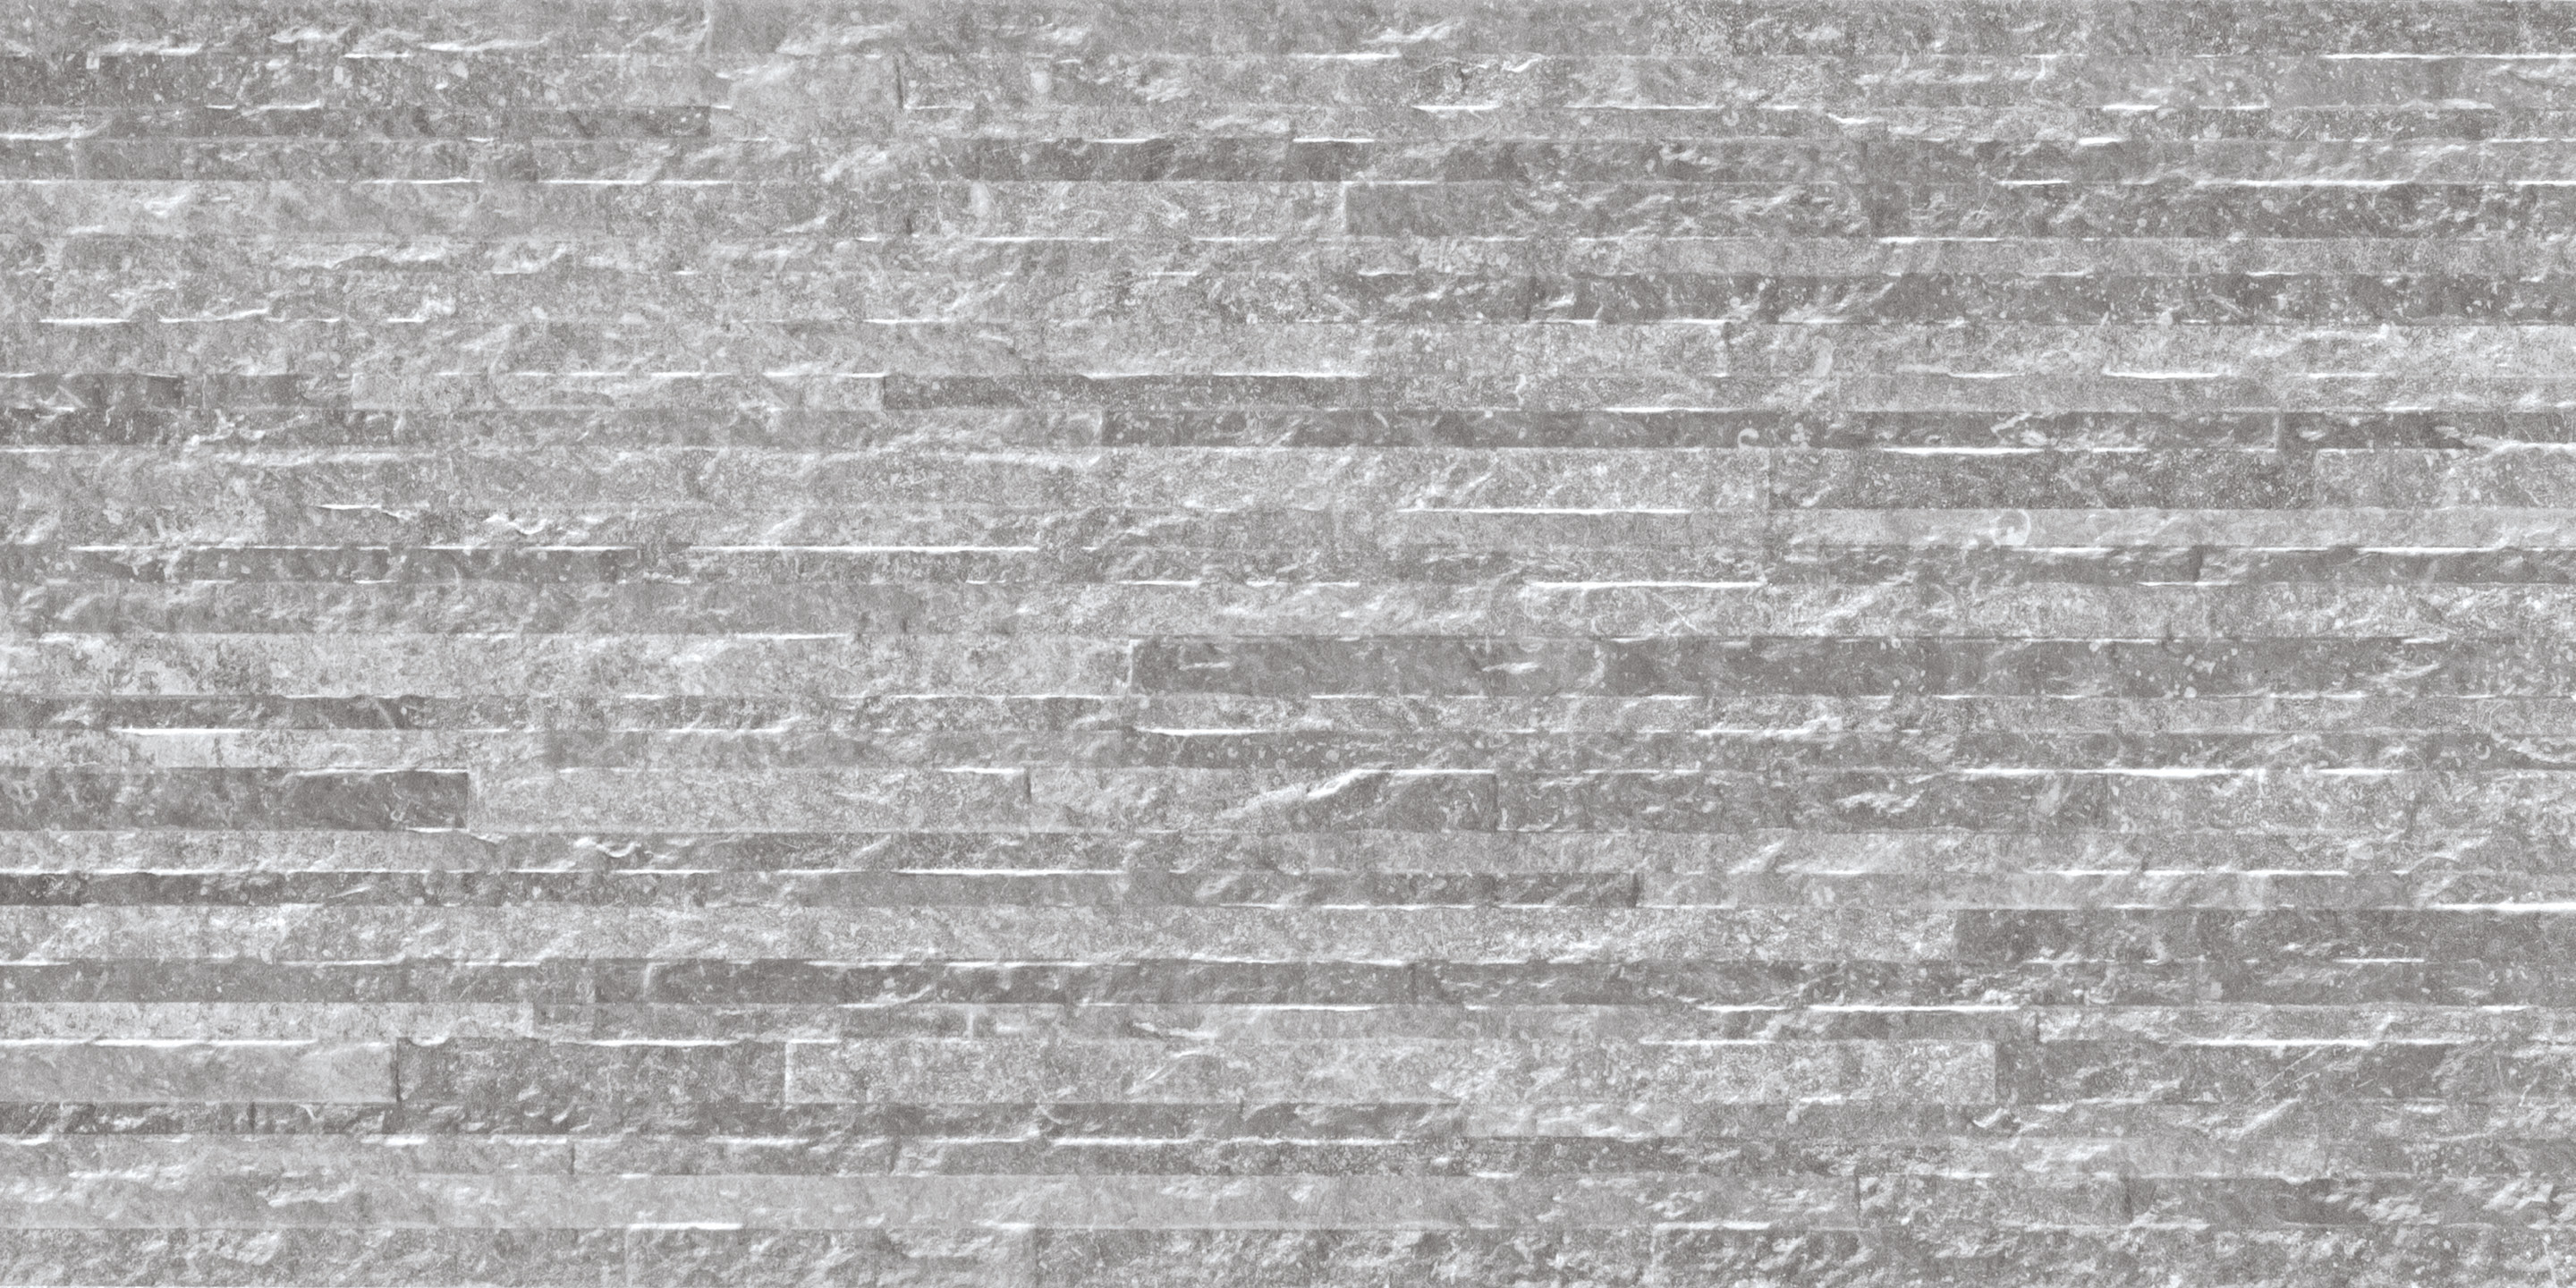 12 x 24 Marwari Rain relief deco rectified porcelain tile (SPECIAL ORDER)